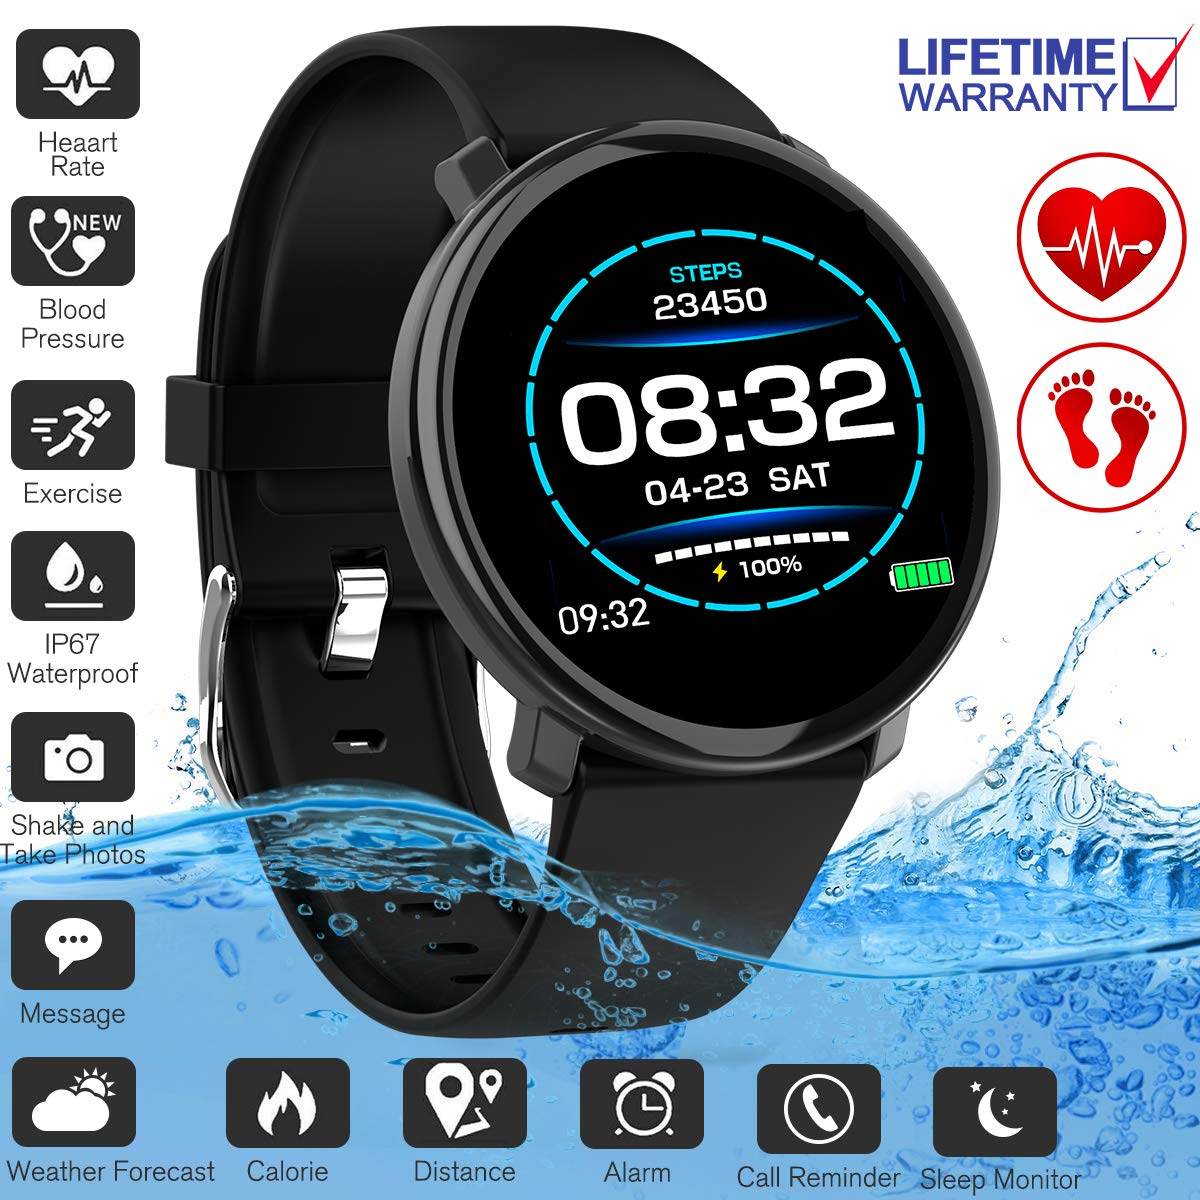 Fitness Tracker,Activity Tracker Smart Watch with Heart Rate Monitor Touchscreen,Waterproof Bluetooth Smartwatch Sport Fitness Activity Tracker Watch Compatible with Android iOS Phone Kids Women Men by YUFENGGF